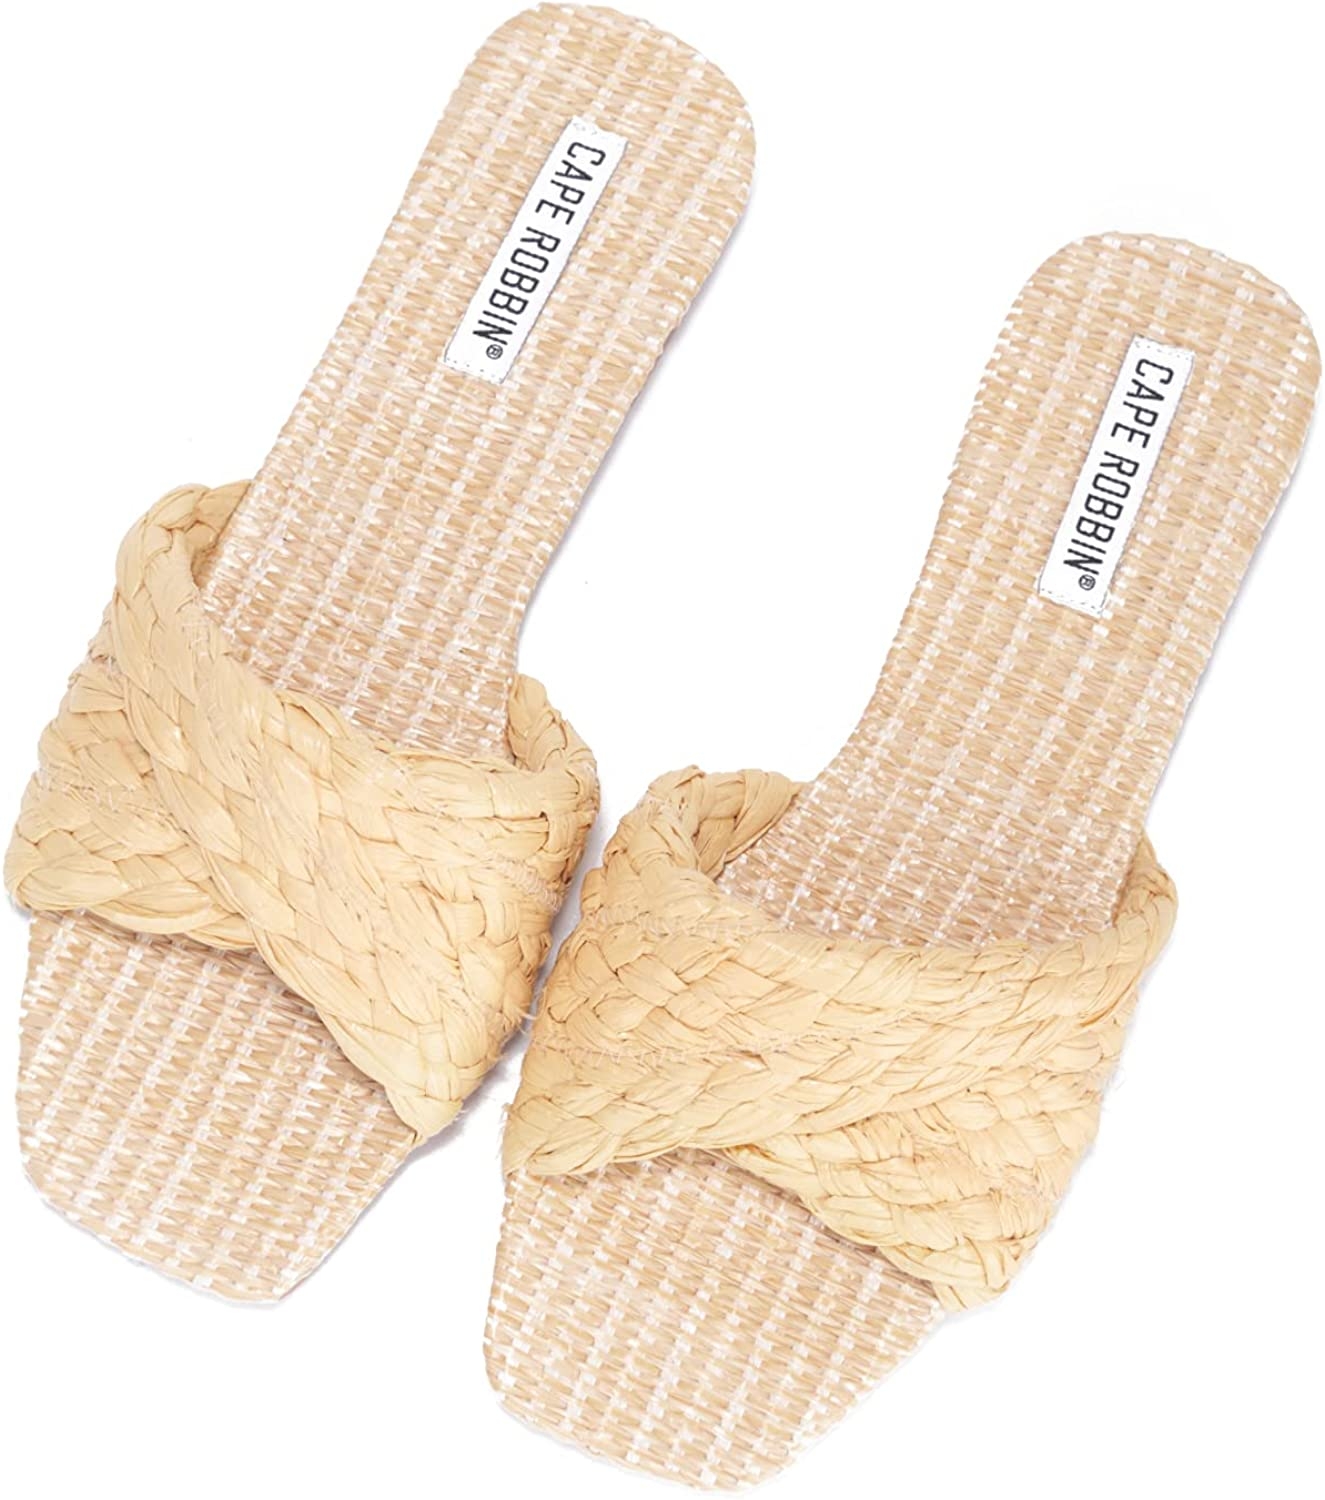 Cape Robbin YOLA Woven Sandals Slides for Women, Womens Mules Slip On Shoes